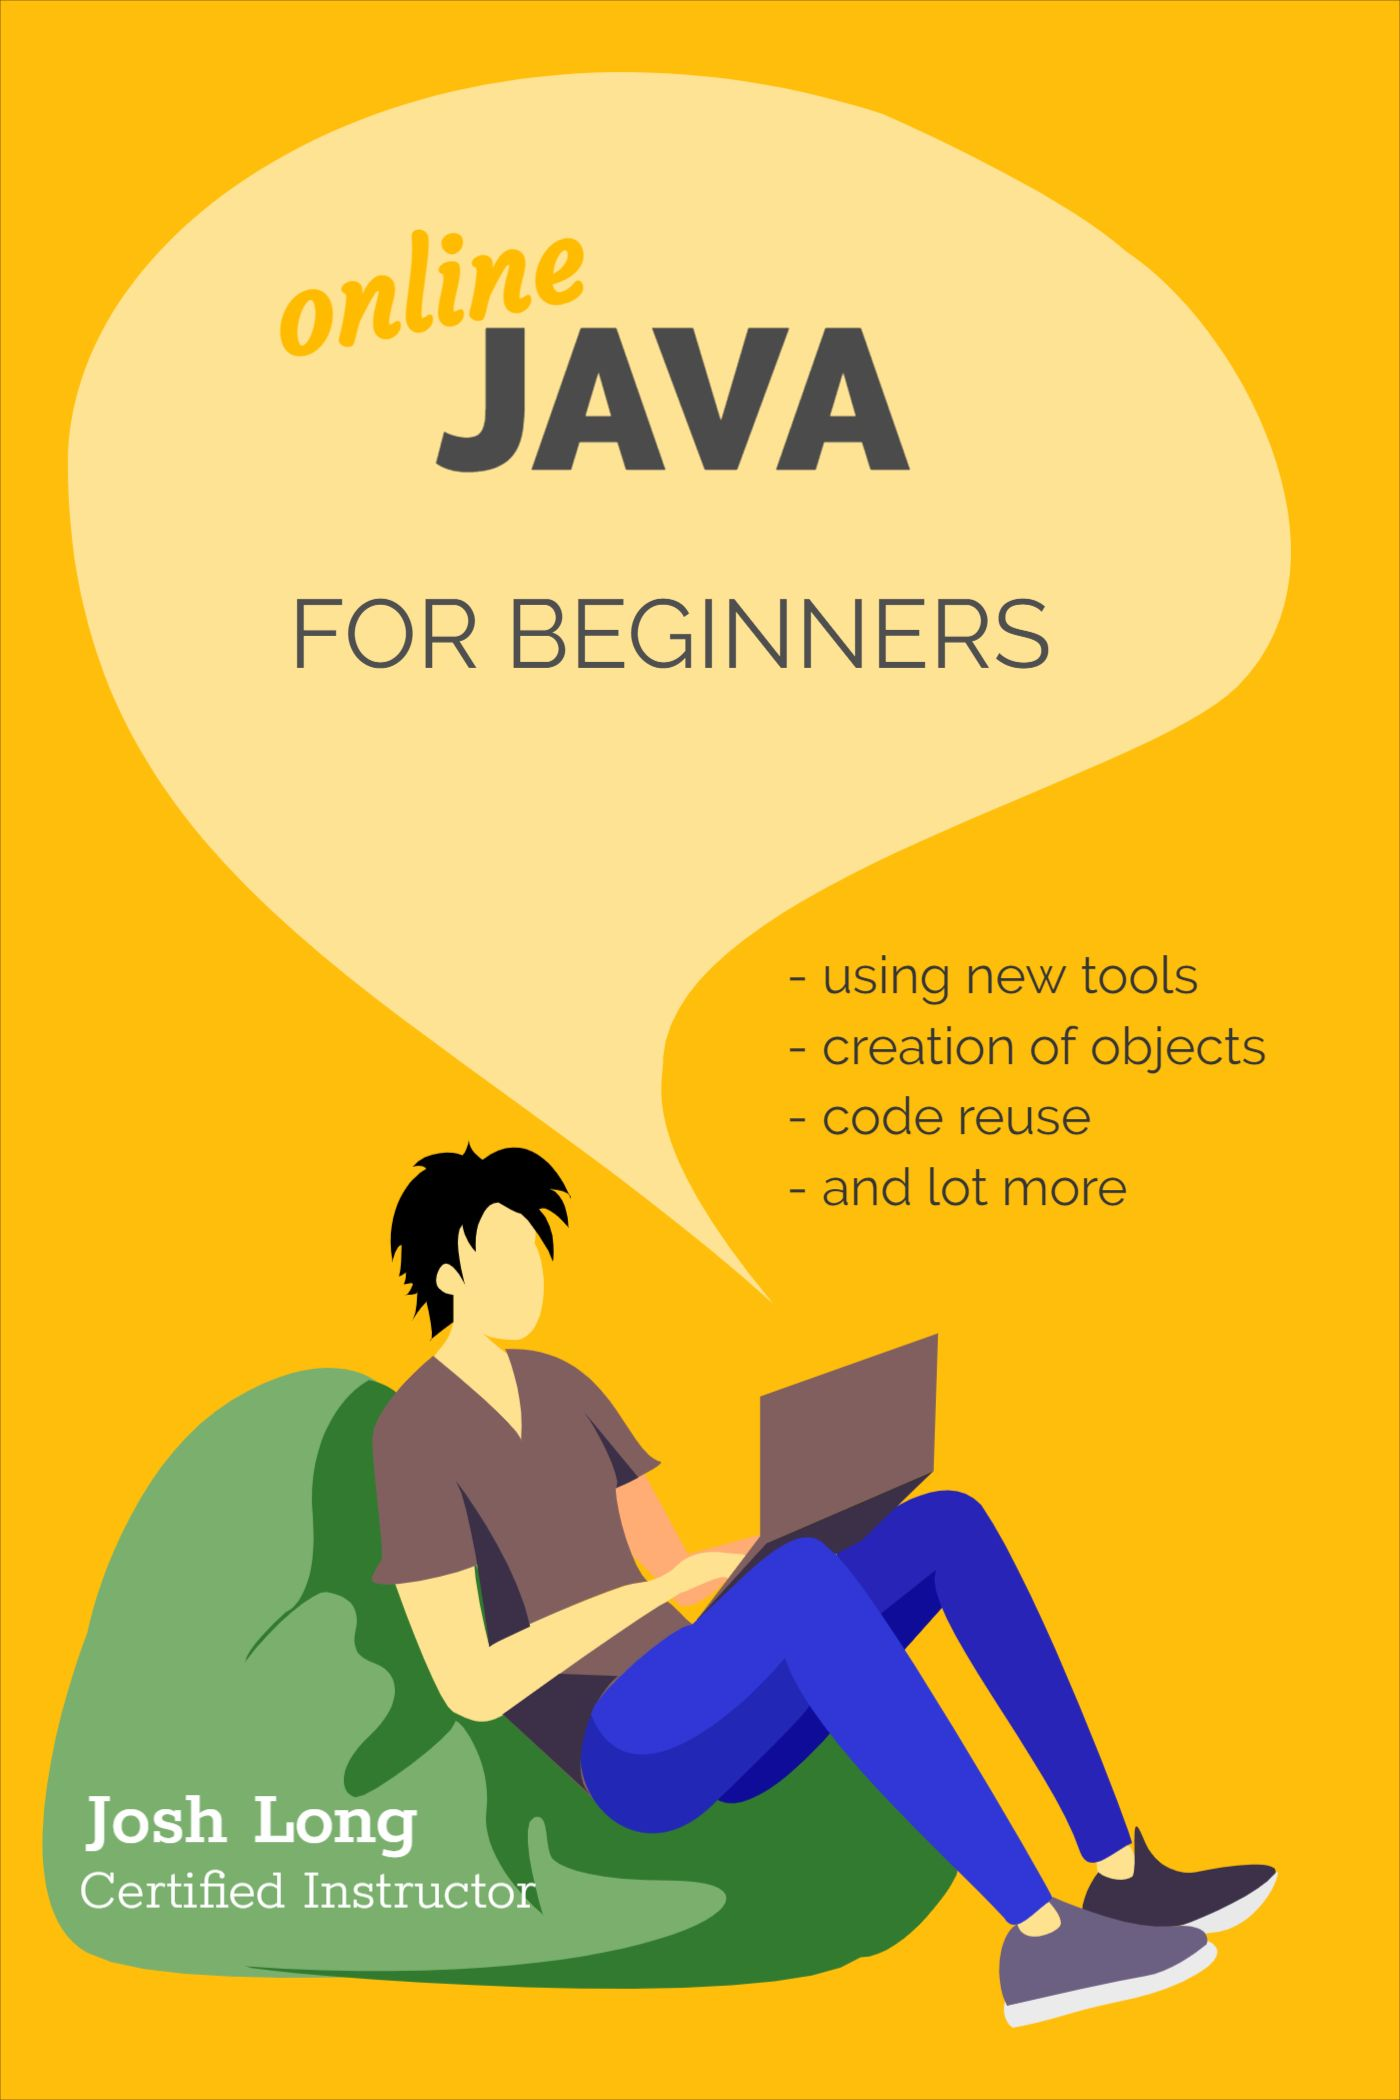 Java Programming Online Course Book Cover Template